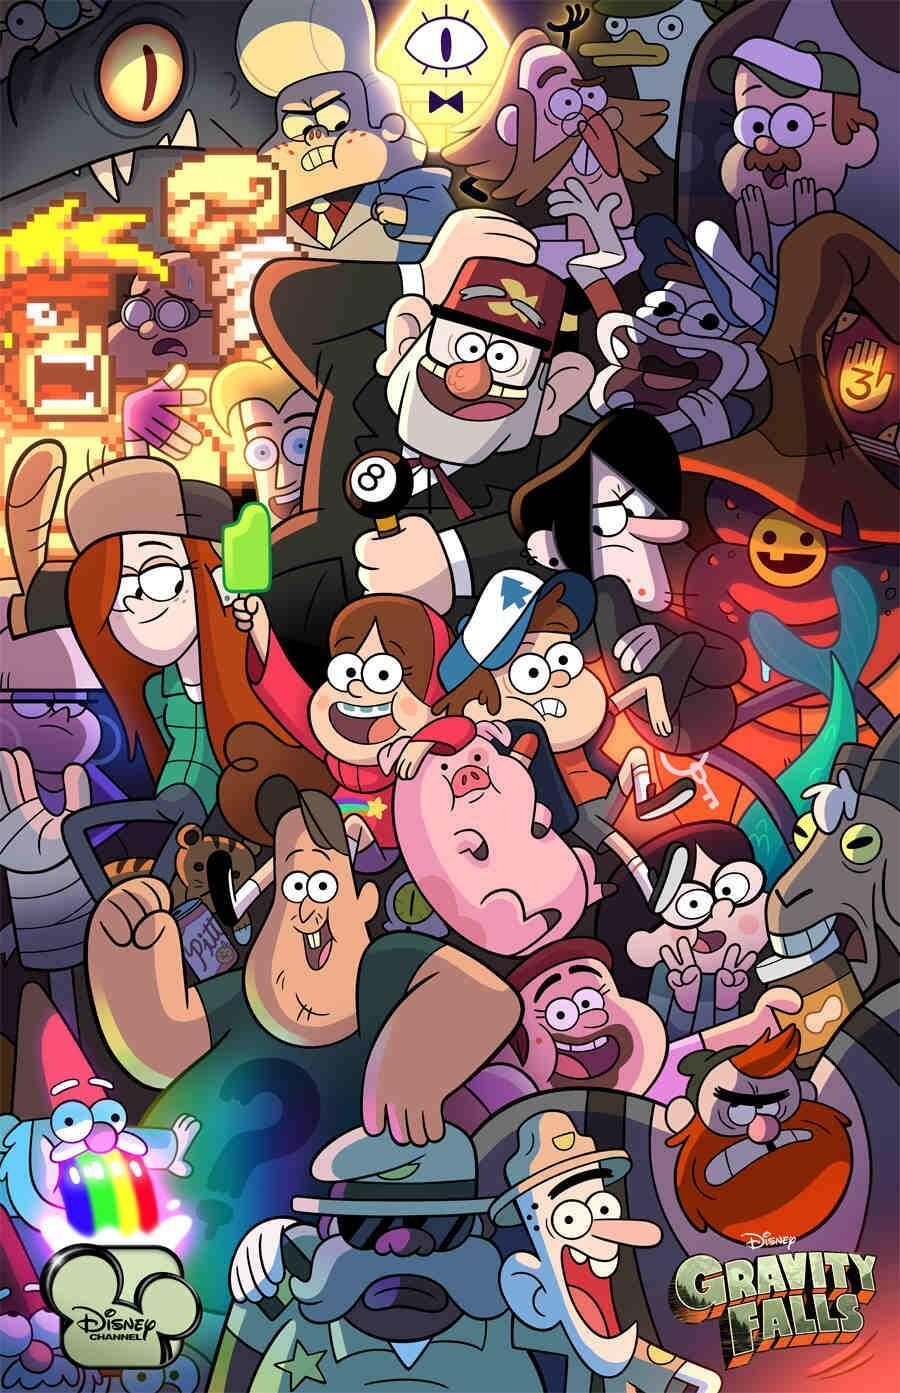 Which Gravity Falls Character is better?